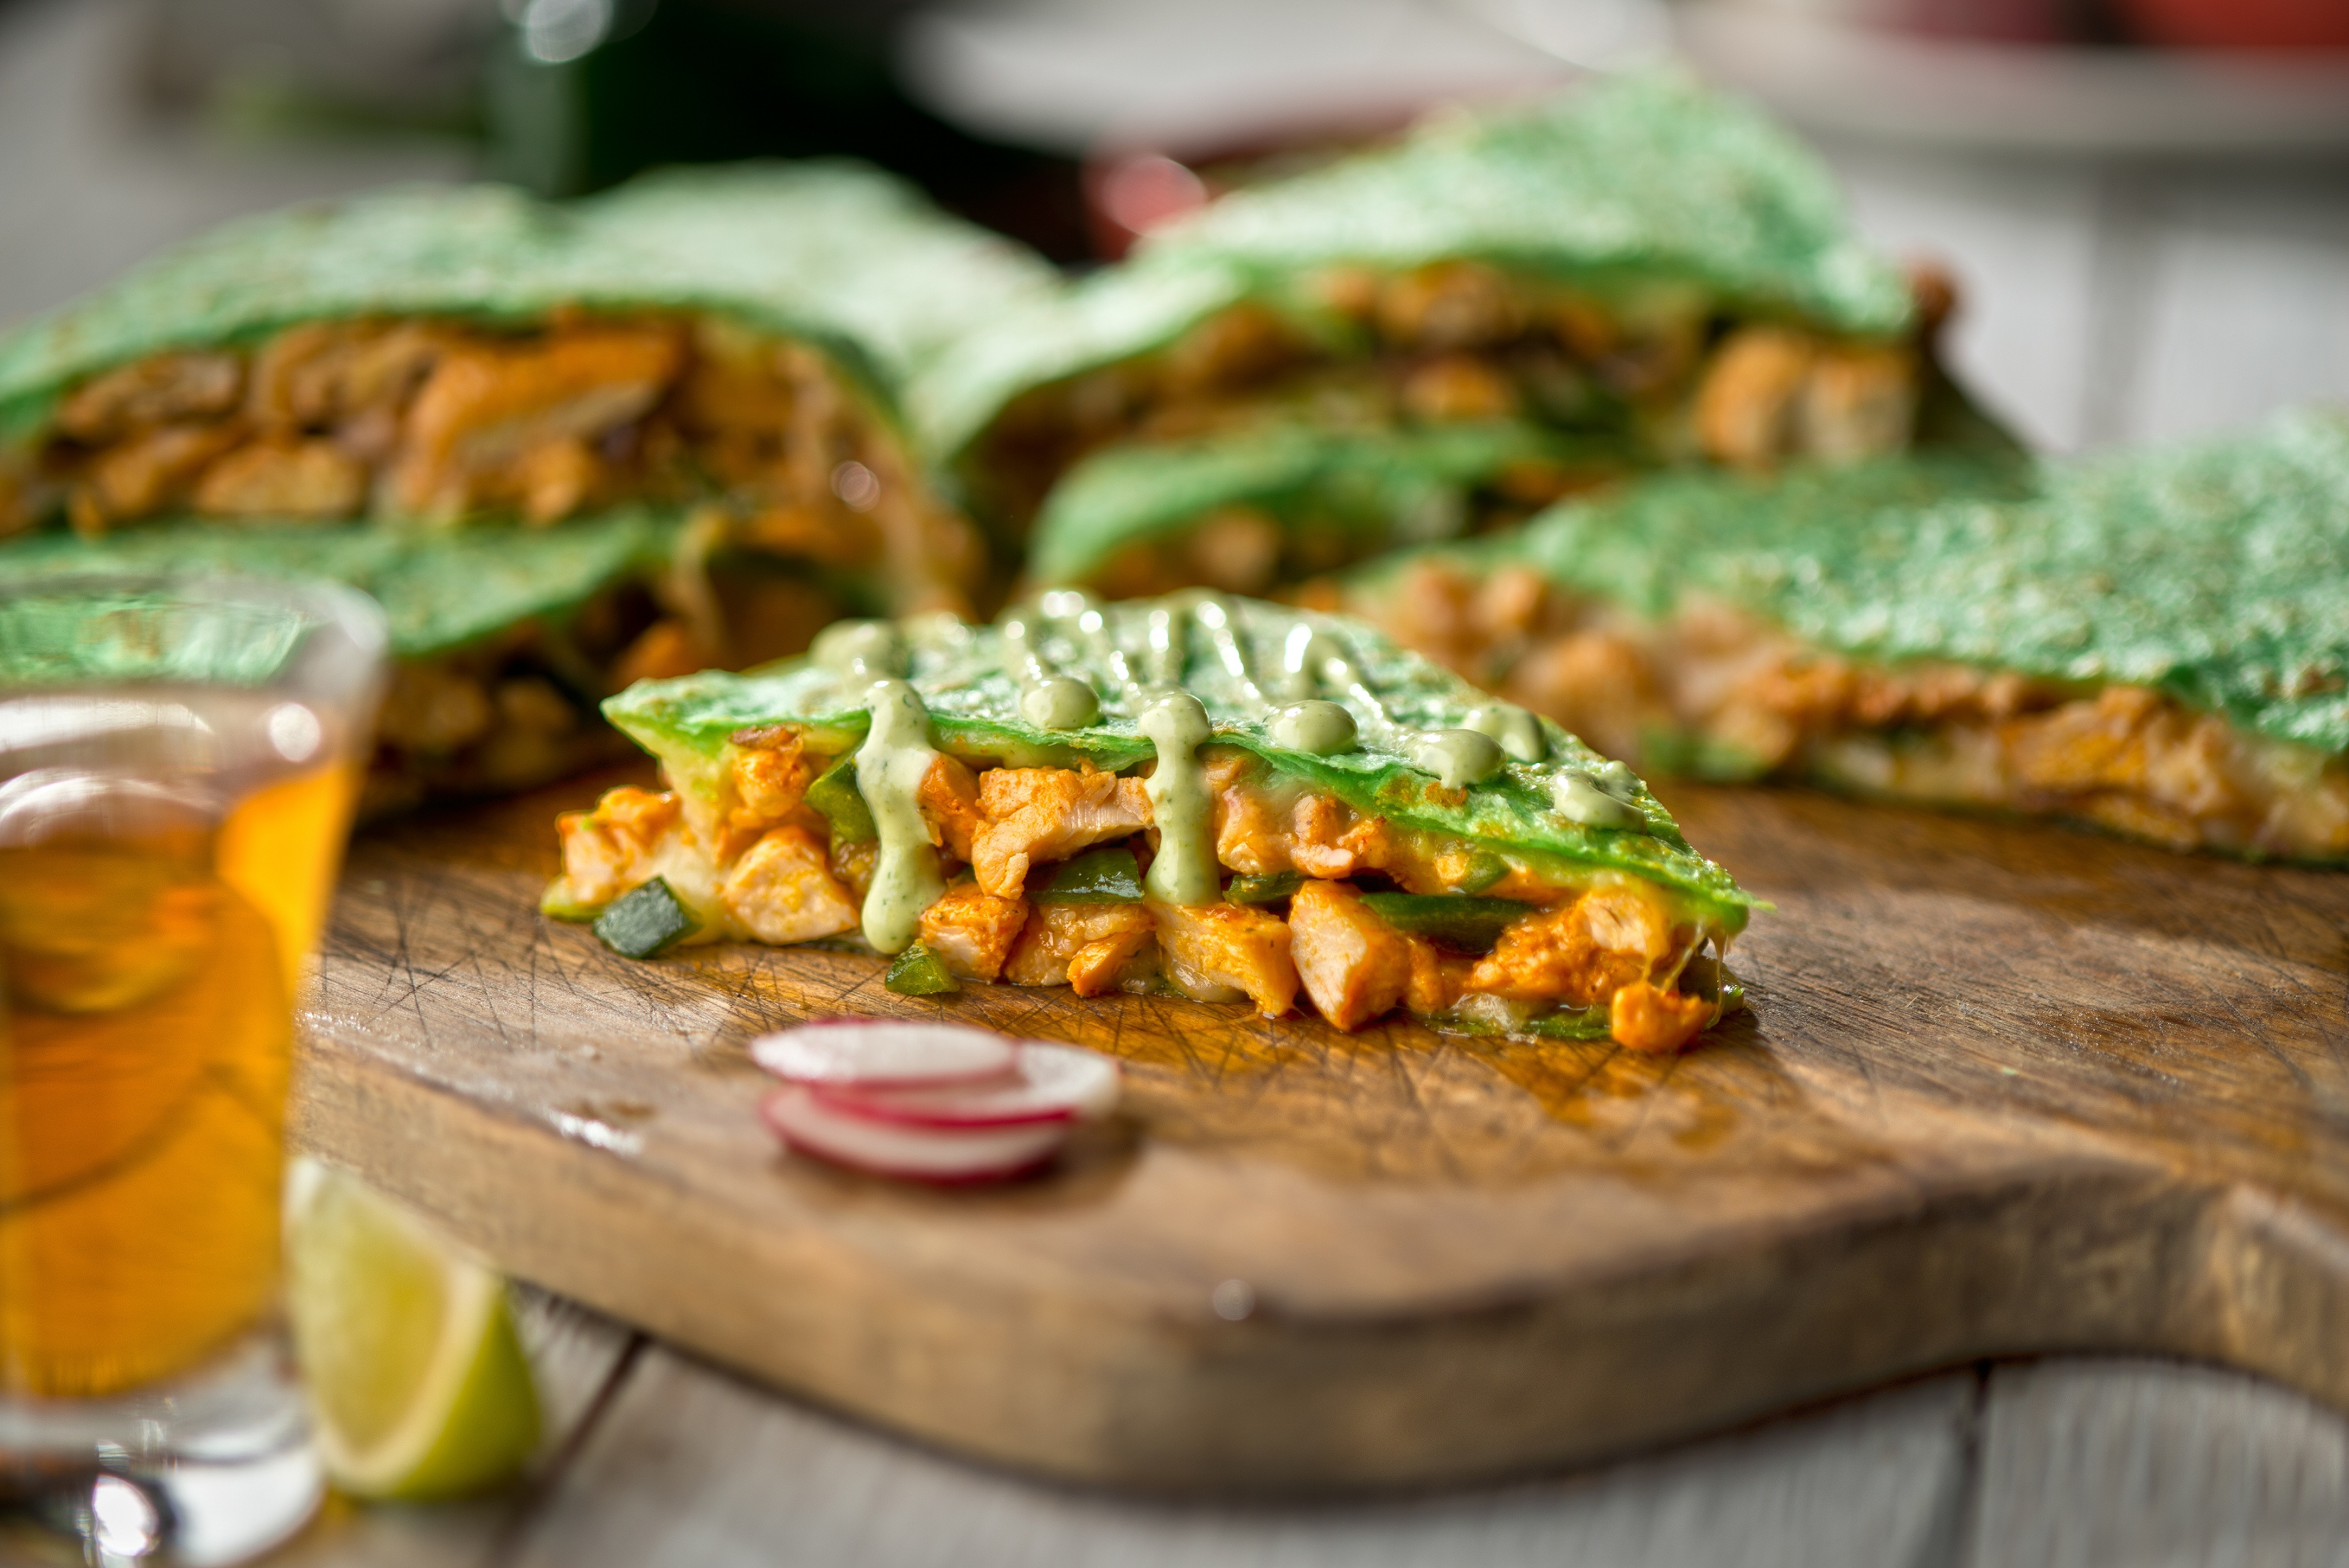 Mean Green Quesadilla, photo by Peter Harasty.